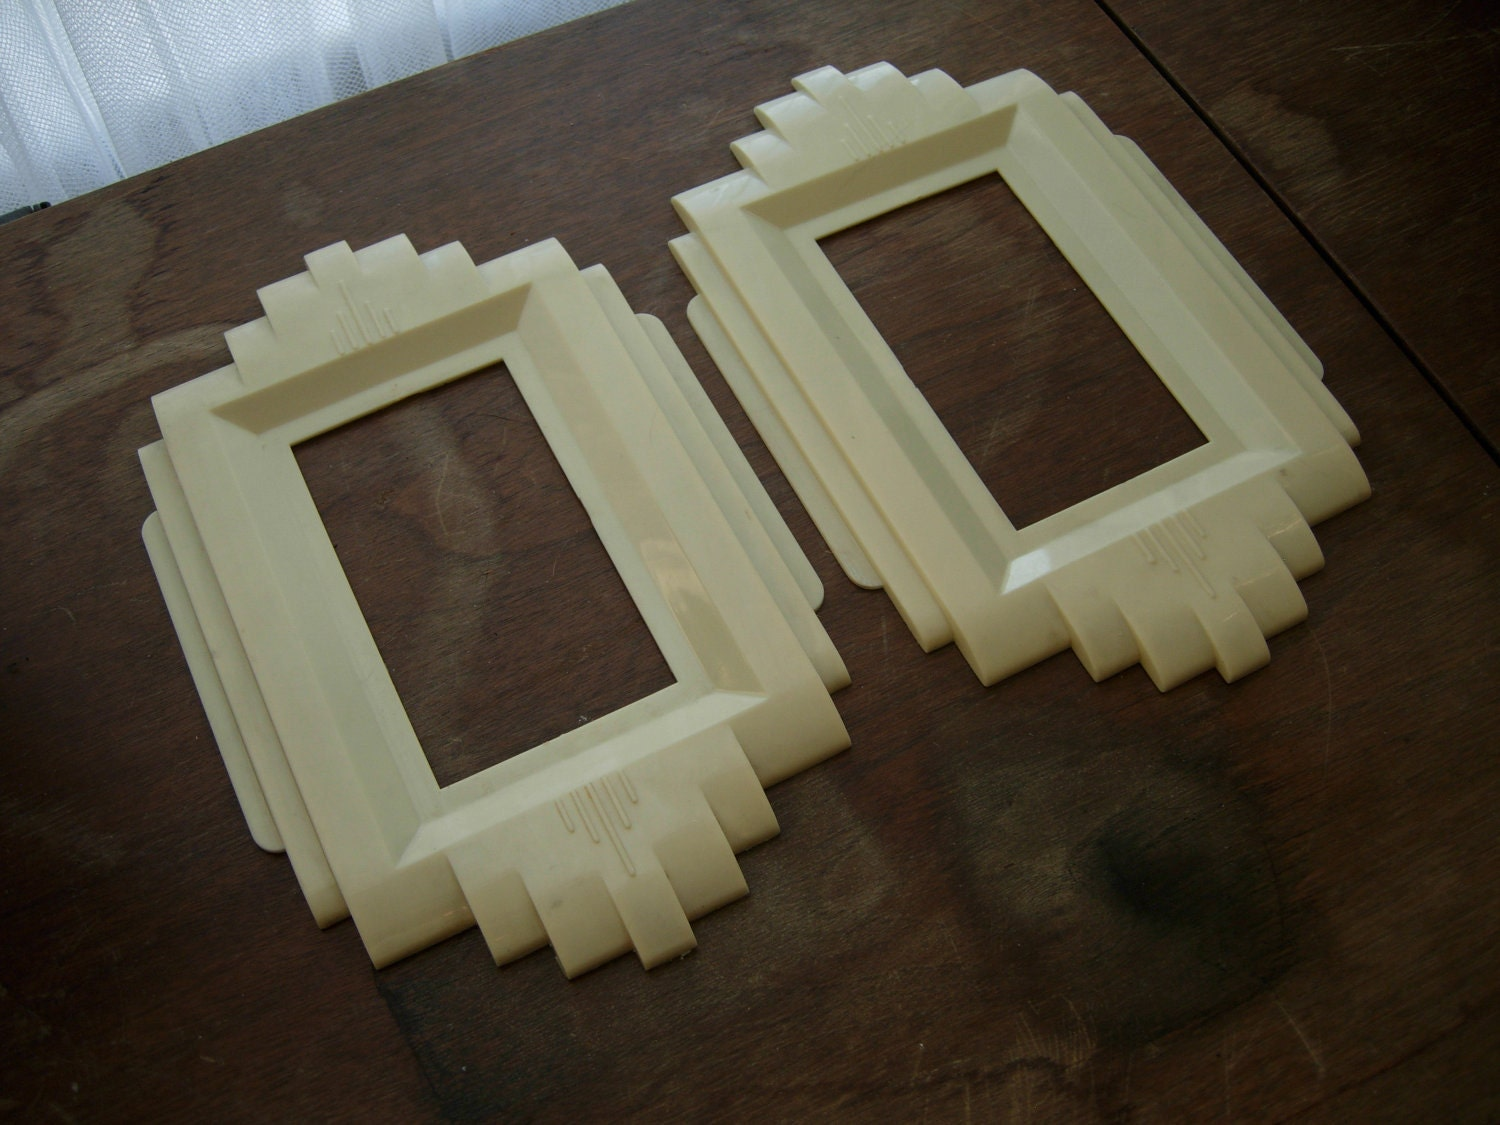 Pair of art deco bakelite switch plates by sergeantsailor on etsy - Art deco switch plate covers ...